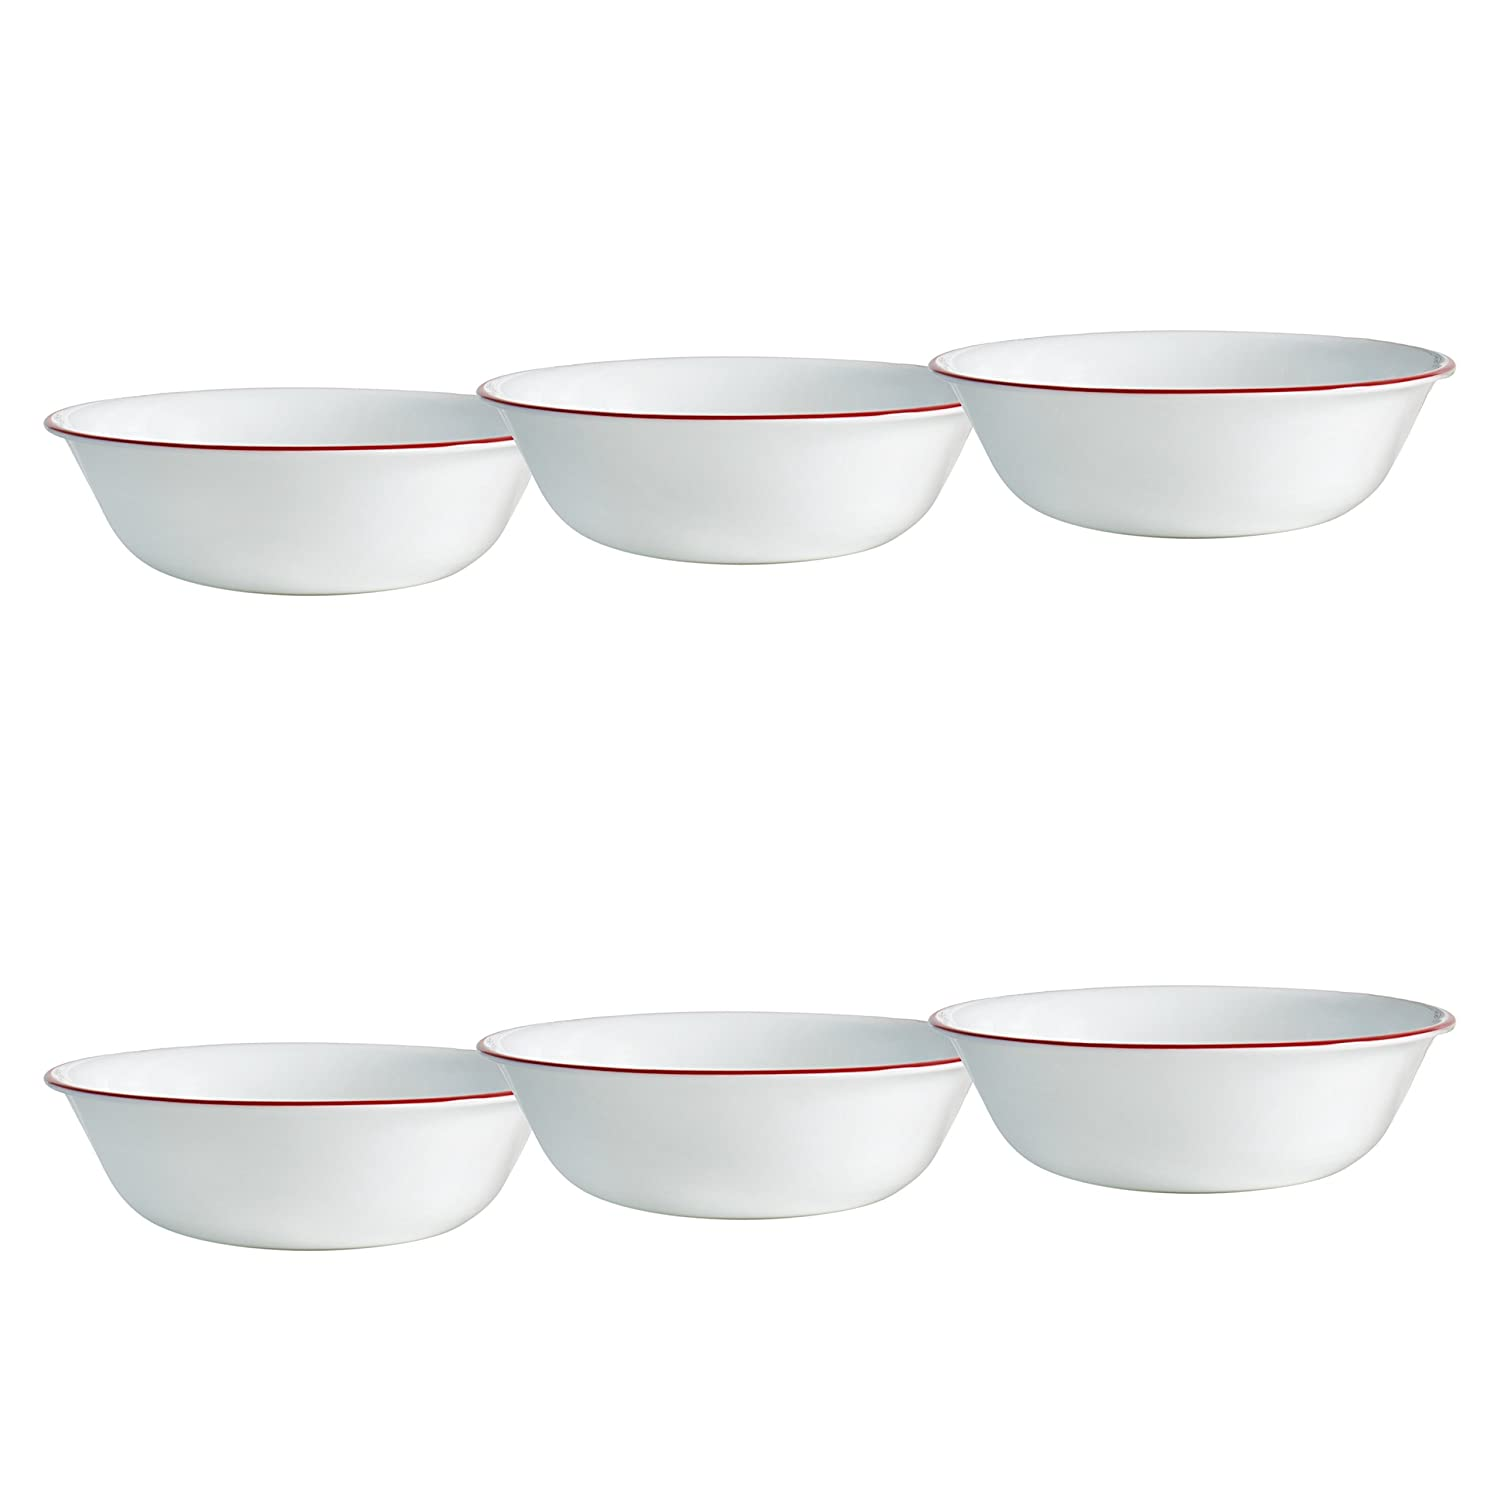 Corelle Livingware 6-Piece Ruby Red Bowls Set, 18-Ounce, White